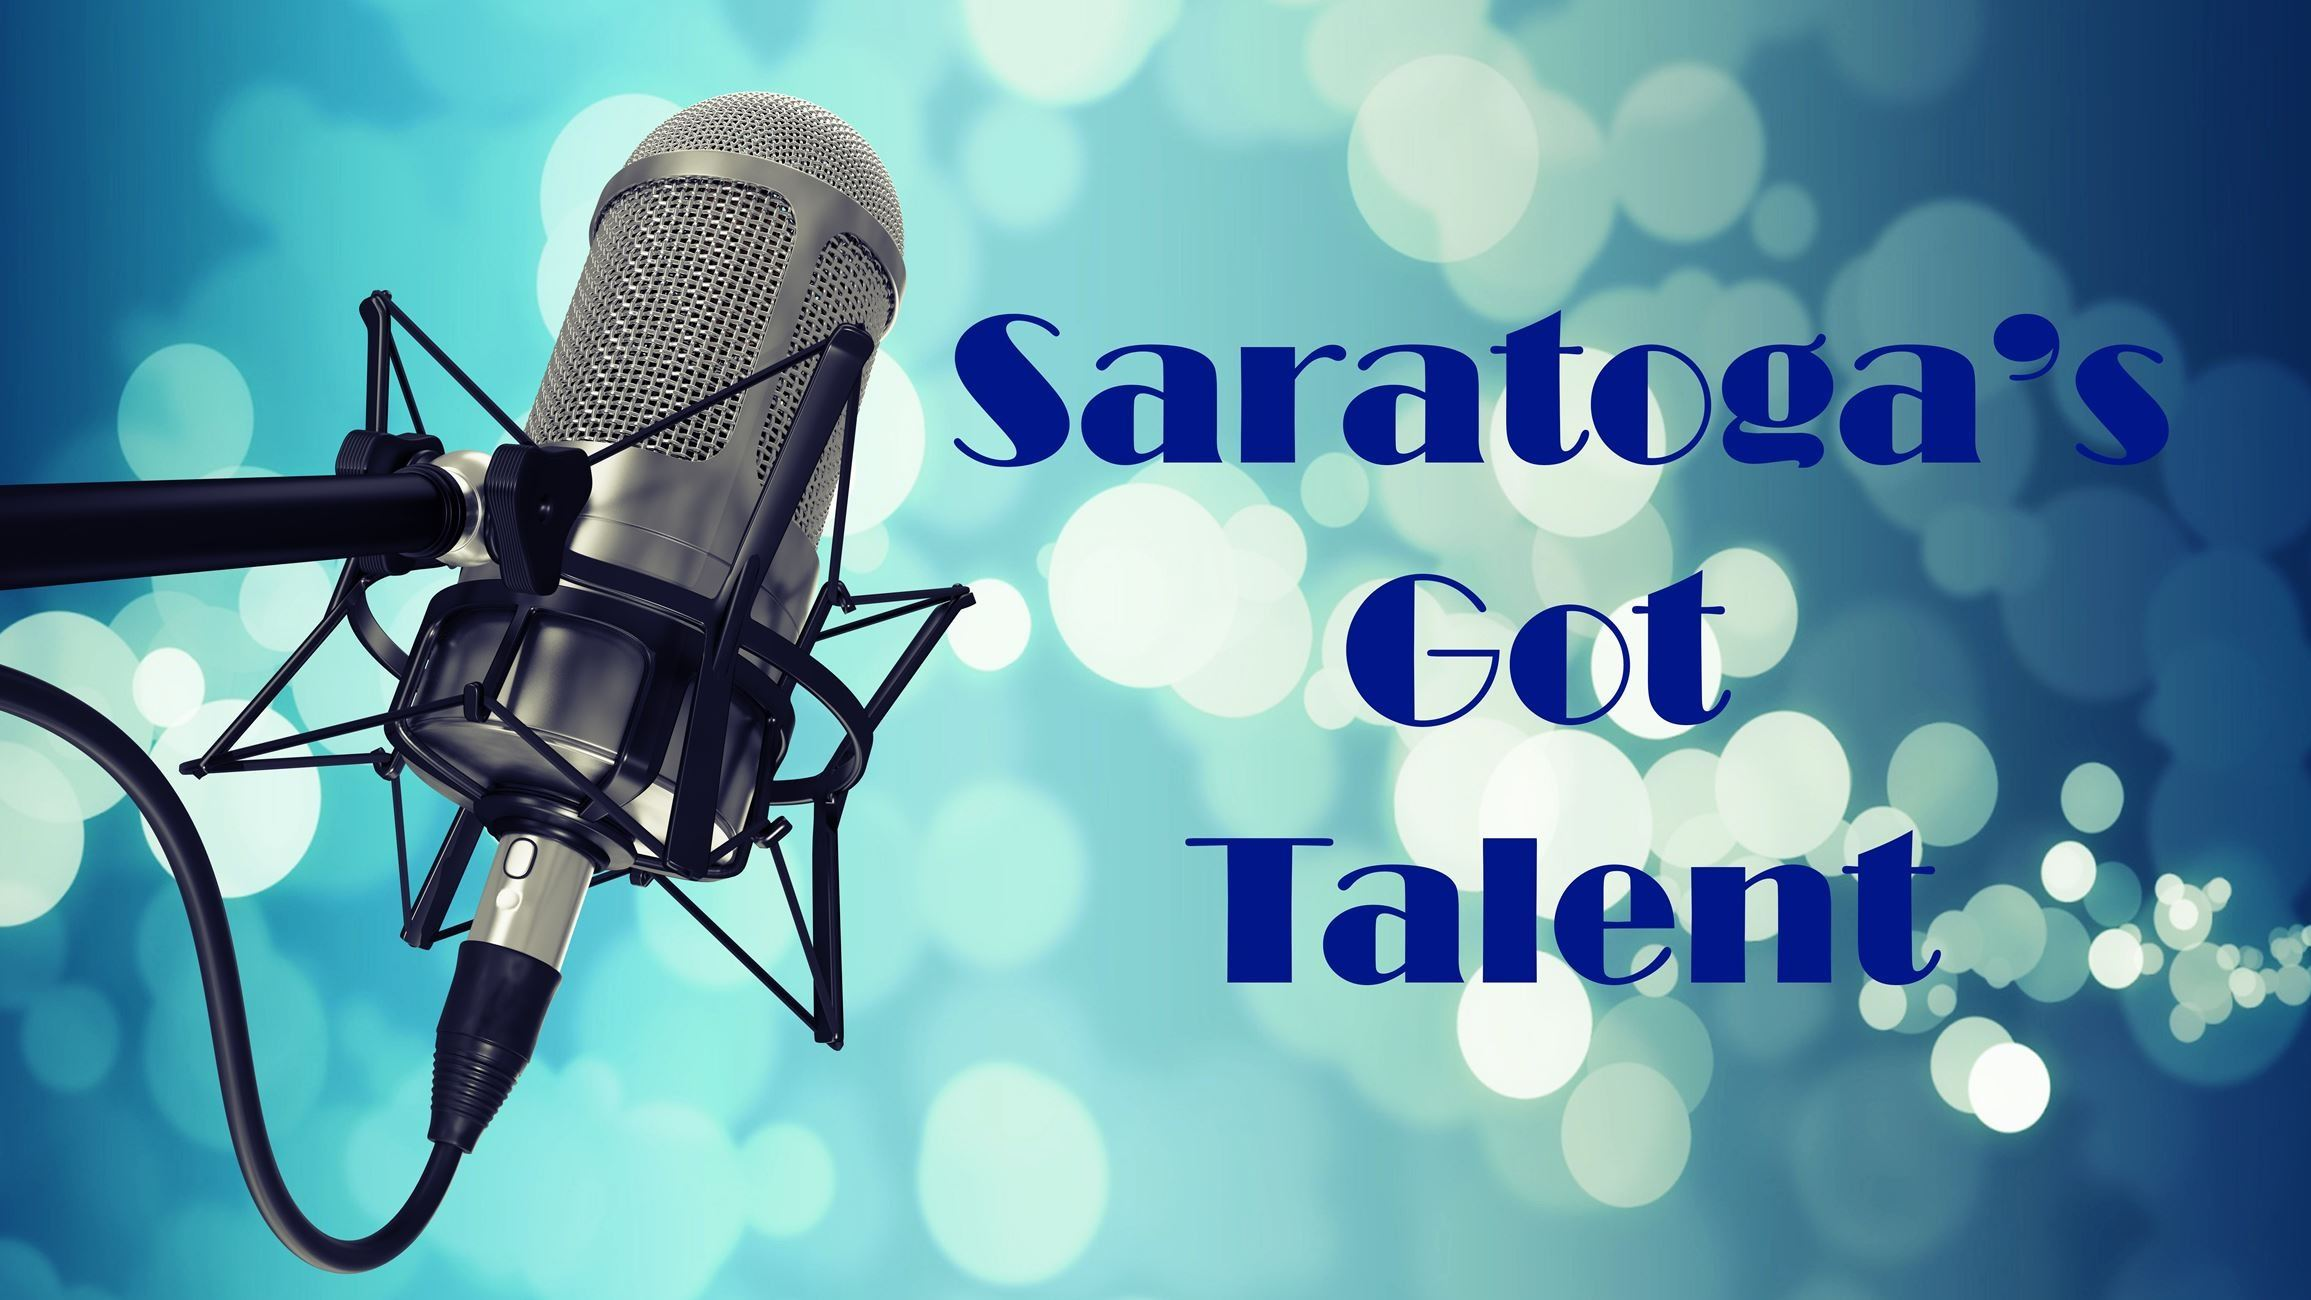 Saratogas Got Talent Image